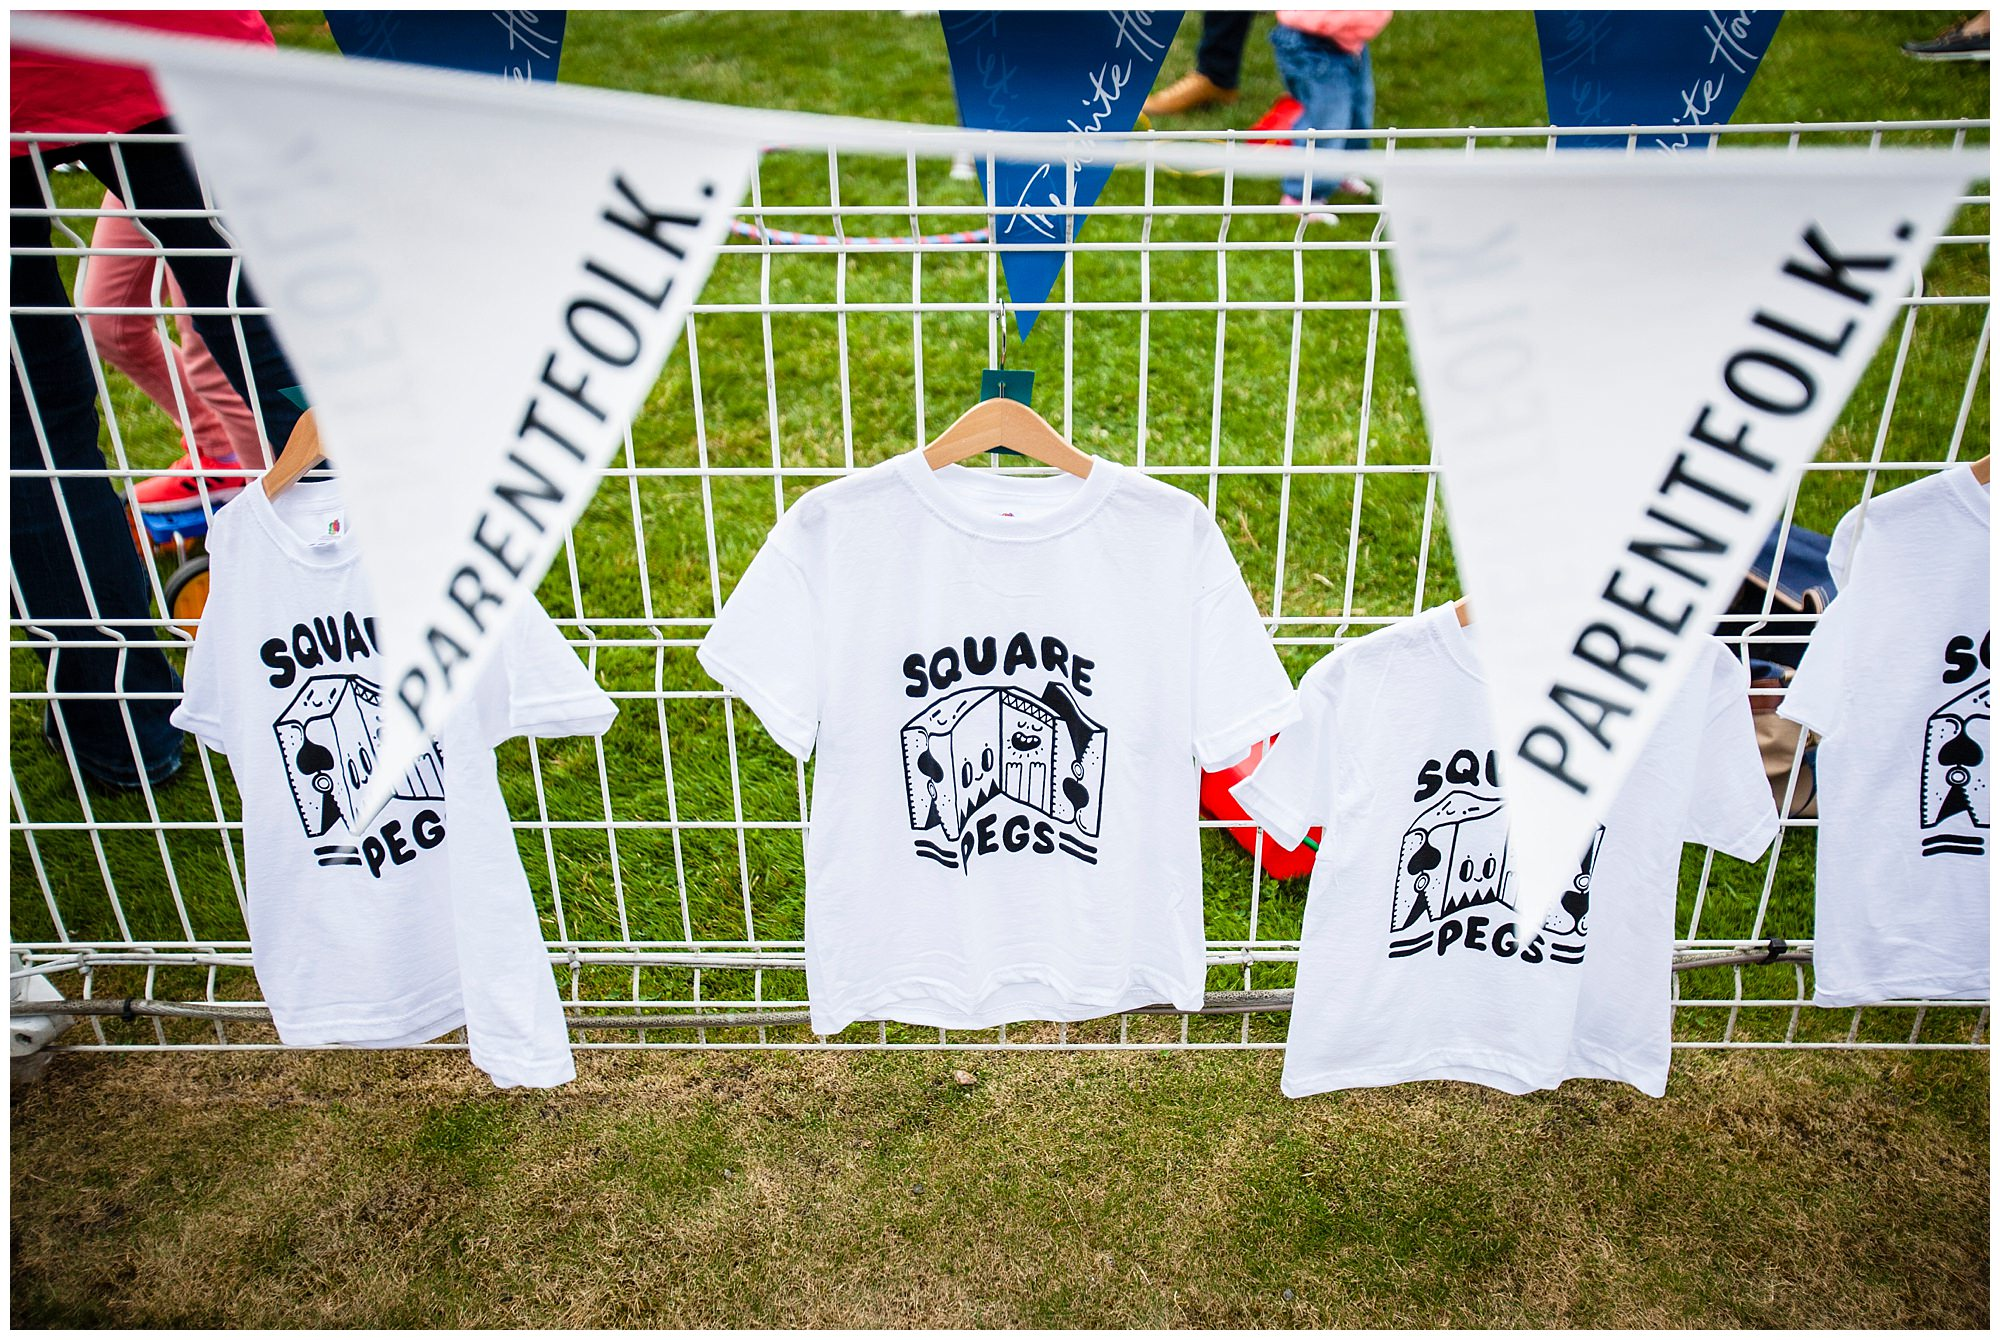 Screen Printed t-shirts drying on railings run by Square Pegs - Cheshire Family Event Photographer Charlotte Giddings